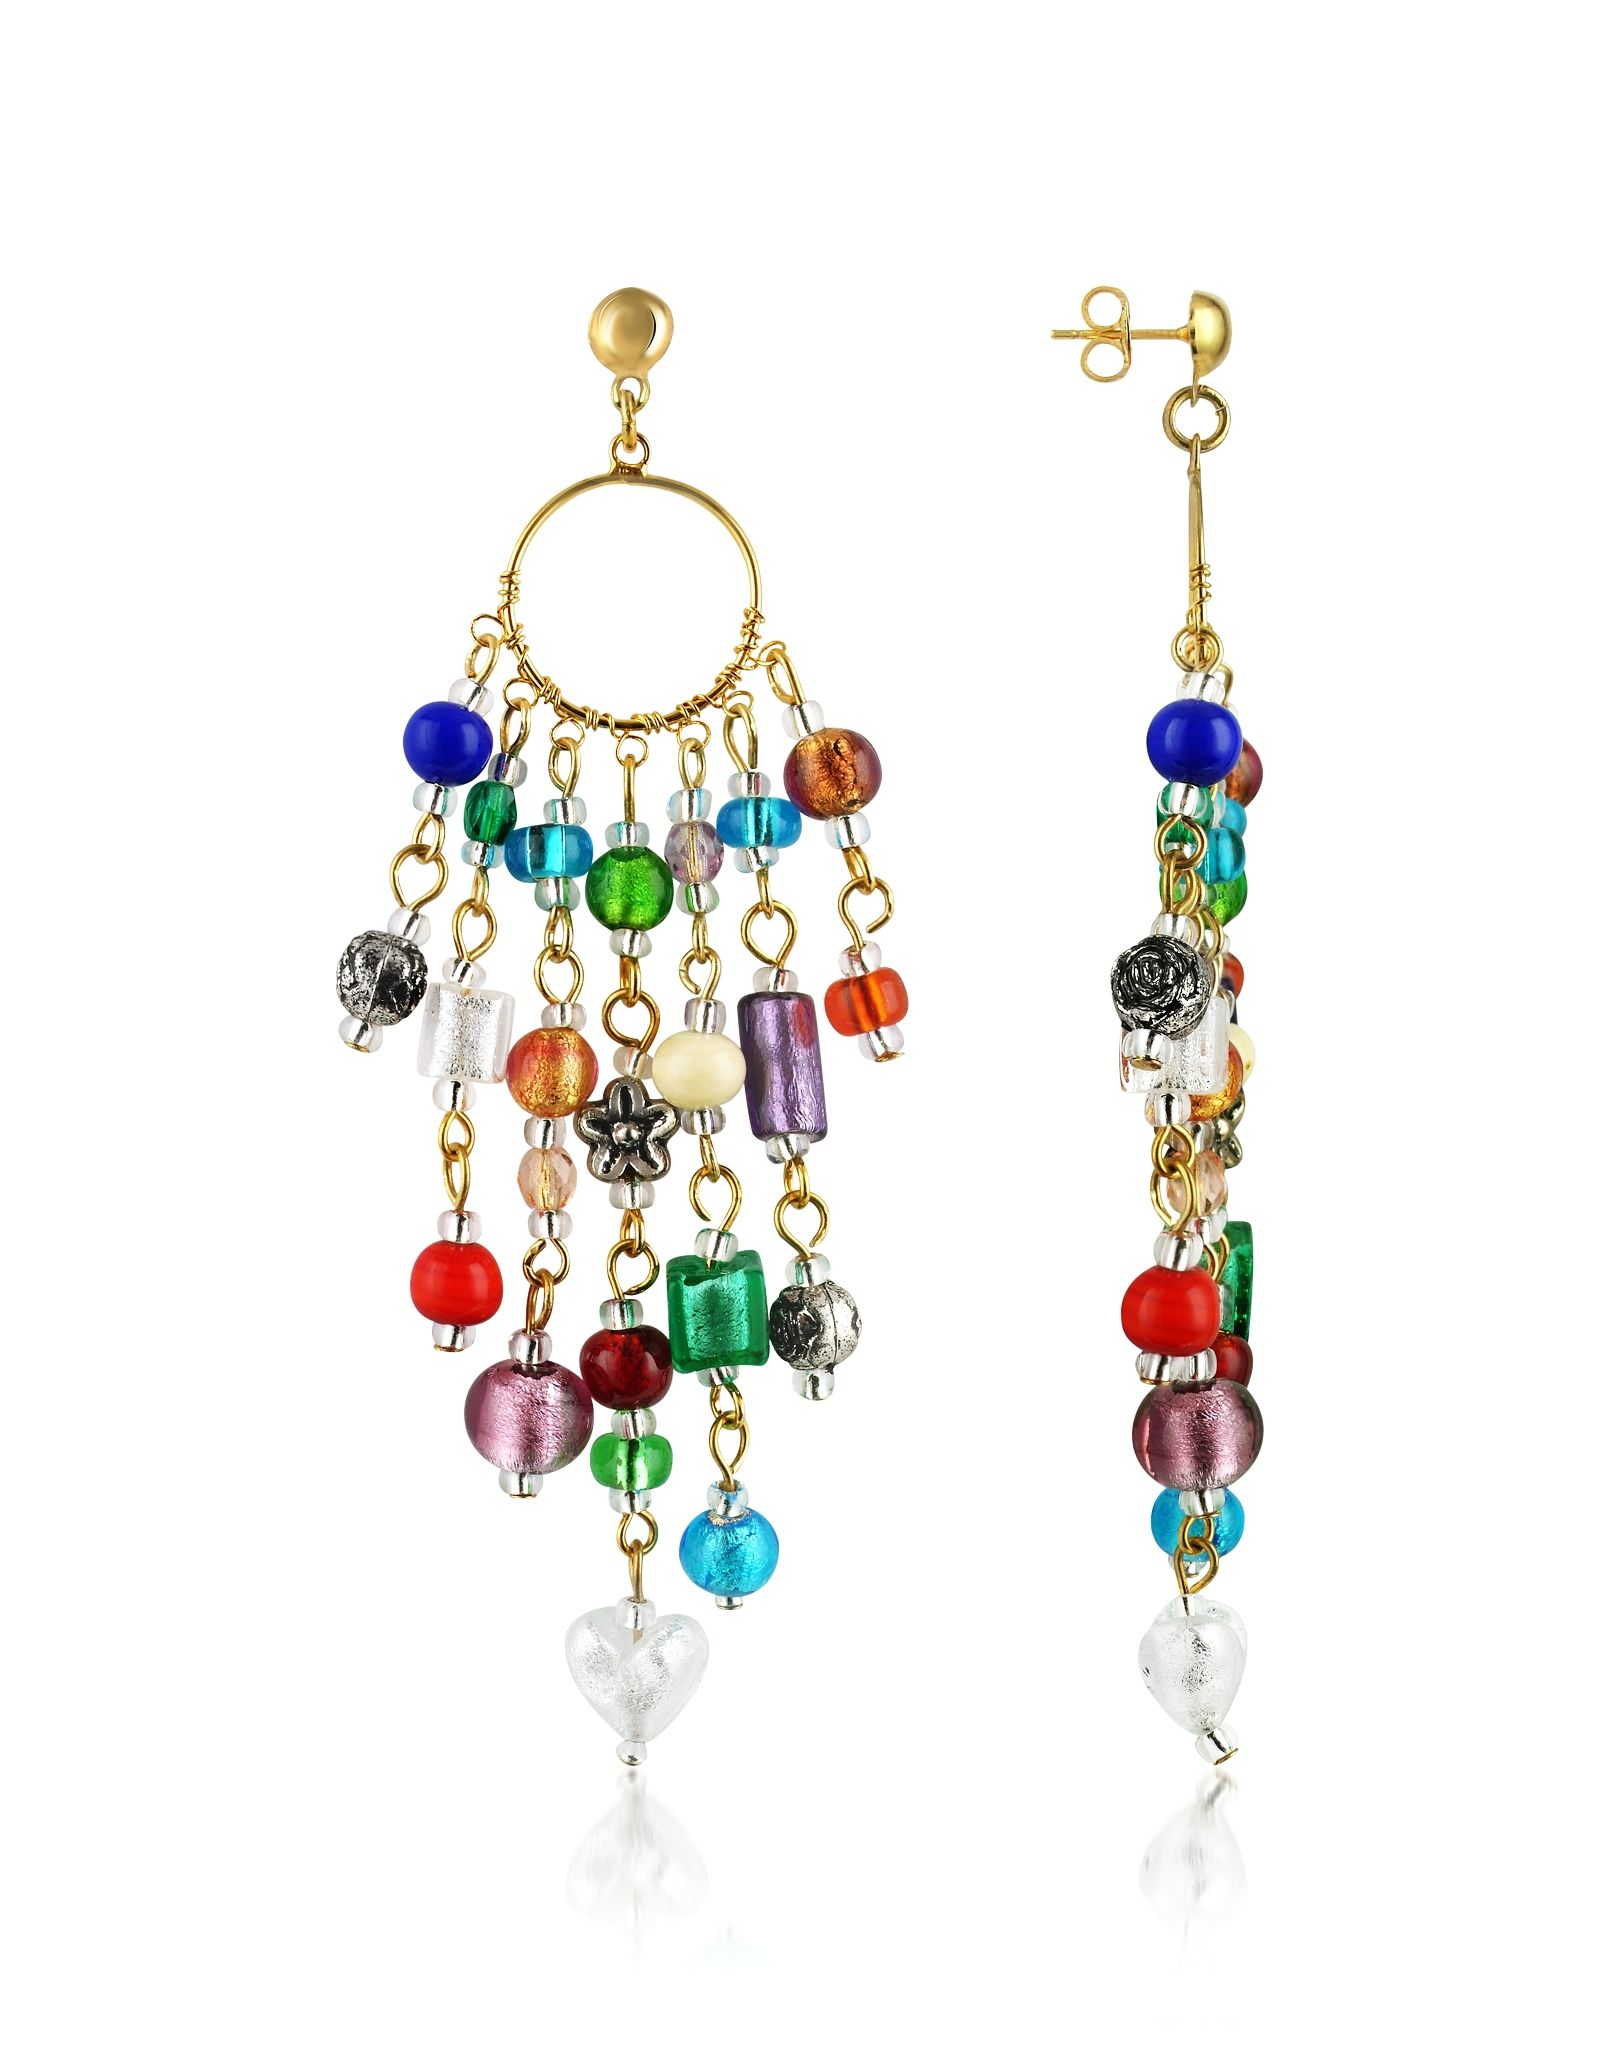 Antica murrina brio murano glass bead chandelier earrings at colorful chandelier earrings in non allergenic metal featuring charming glass beads in varying shapes and sizes offer unique charm with an elegant flair arubaitofo Images